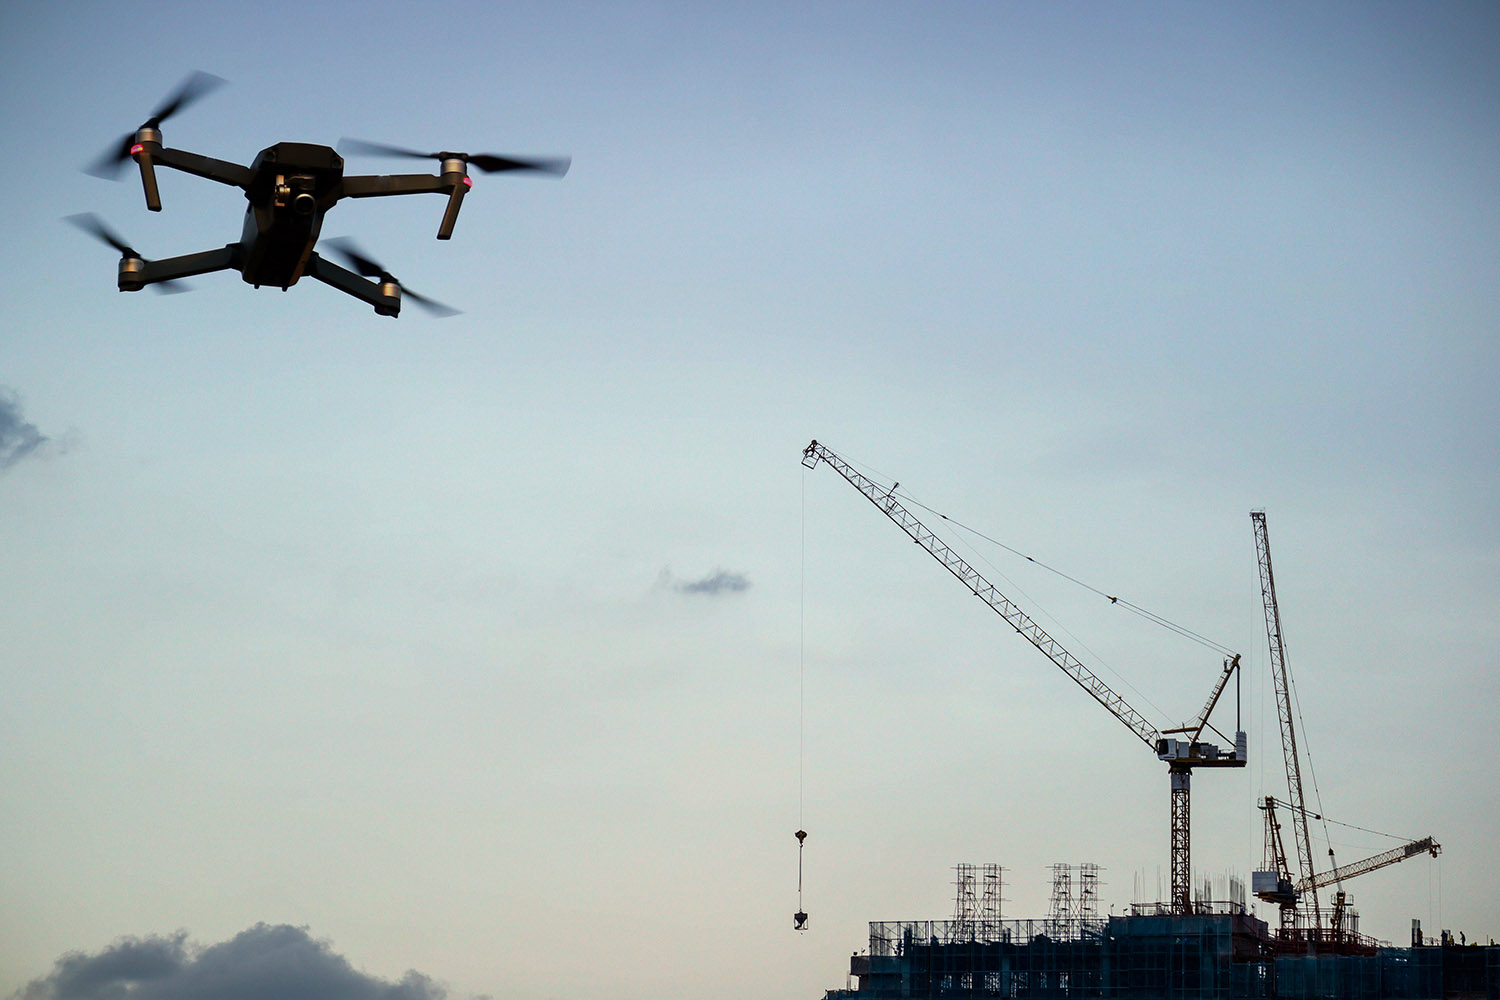 Drone with camera flying on Construction site with crane. double exposure